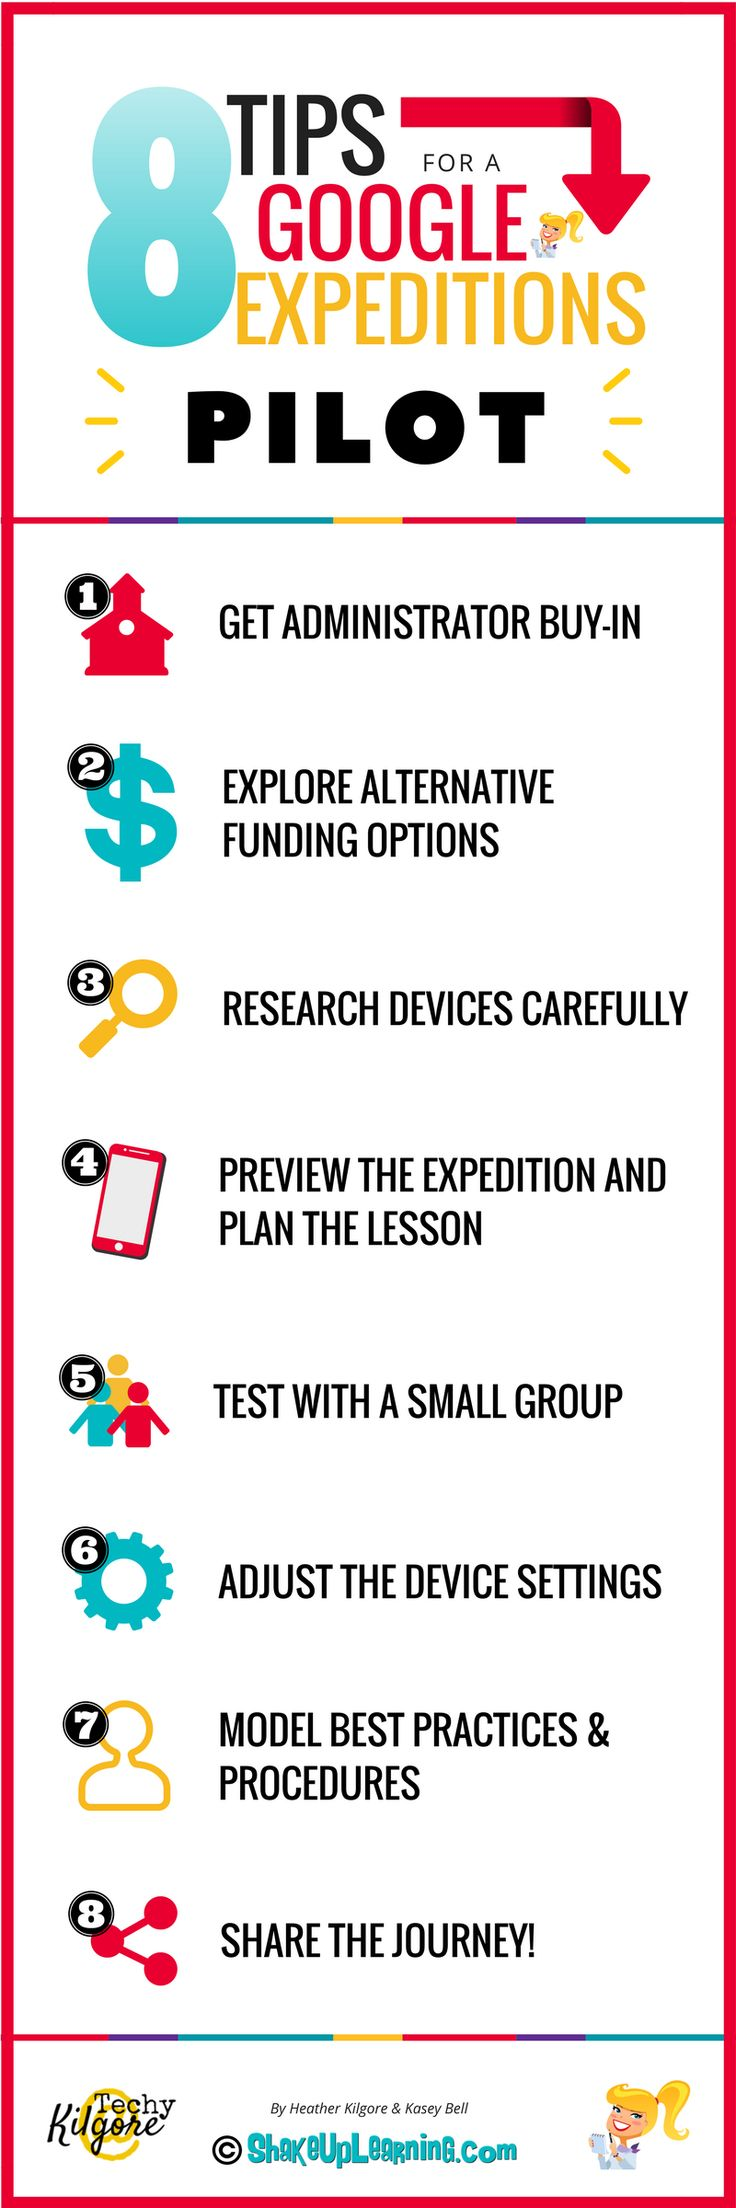 8 Tips for a Google Expeditions Pilot: Below are 8 Tips for a Google Expeditions Pilot from Heather Kilgore, an Instructional Technology Coordinator for Commerce ISD in Commerce, Texas, where she shares the lessons learned from their Google Expeditions pilot program. As we all begin to find ways to bring Google Expeditions, Google Cardboard, and other virtual reality experiences to our classrooms, I thought it was important to share this first-hand experience with you.